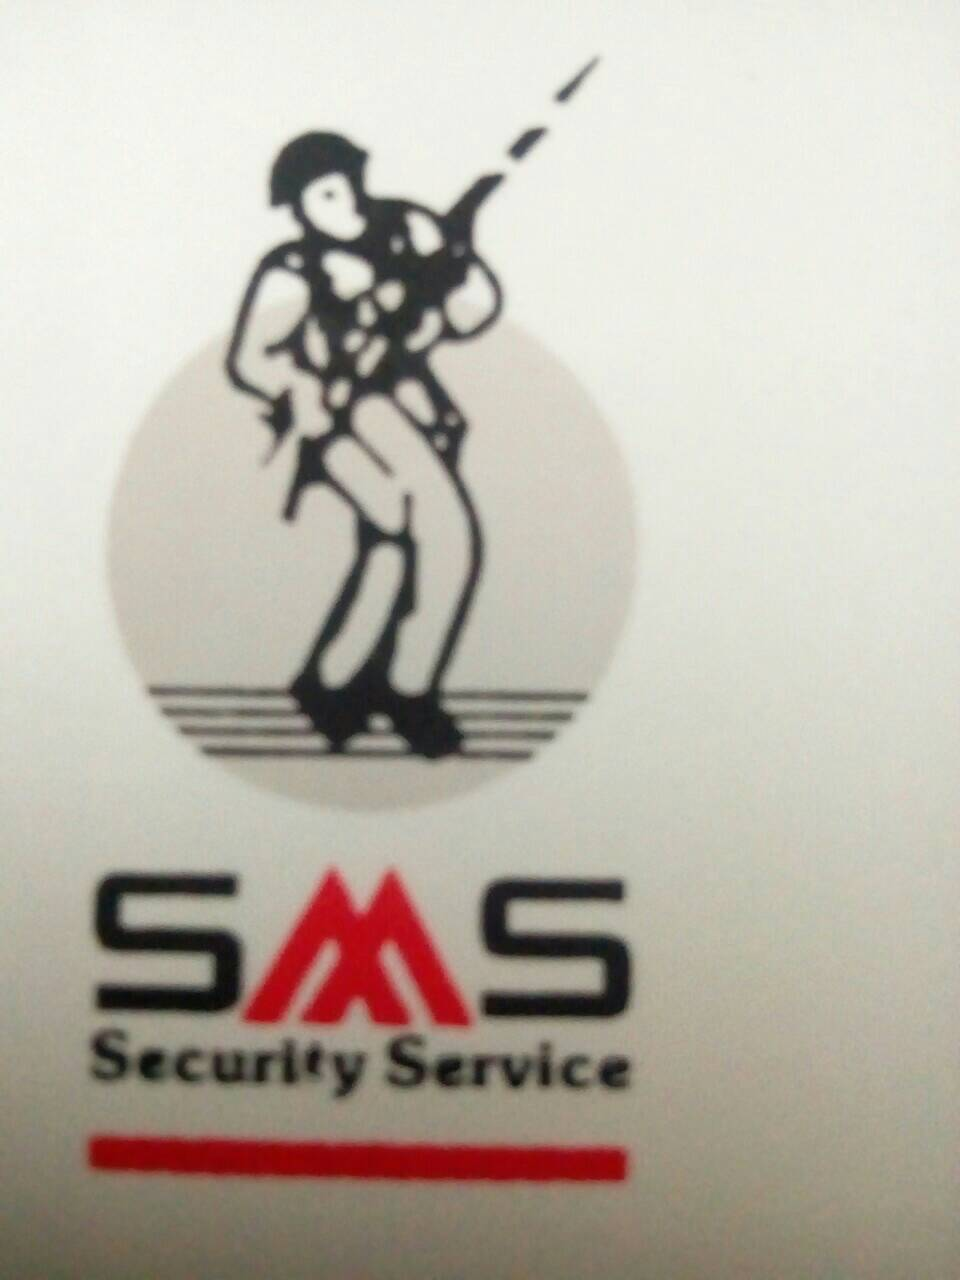 Sms Security Services & Detective Agency